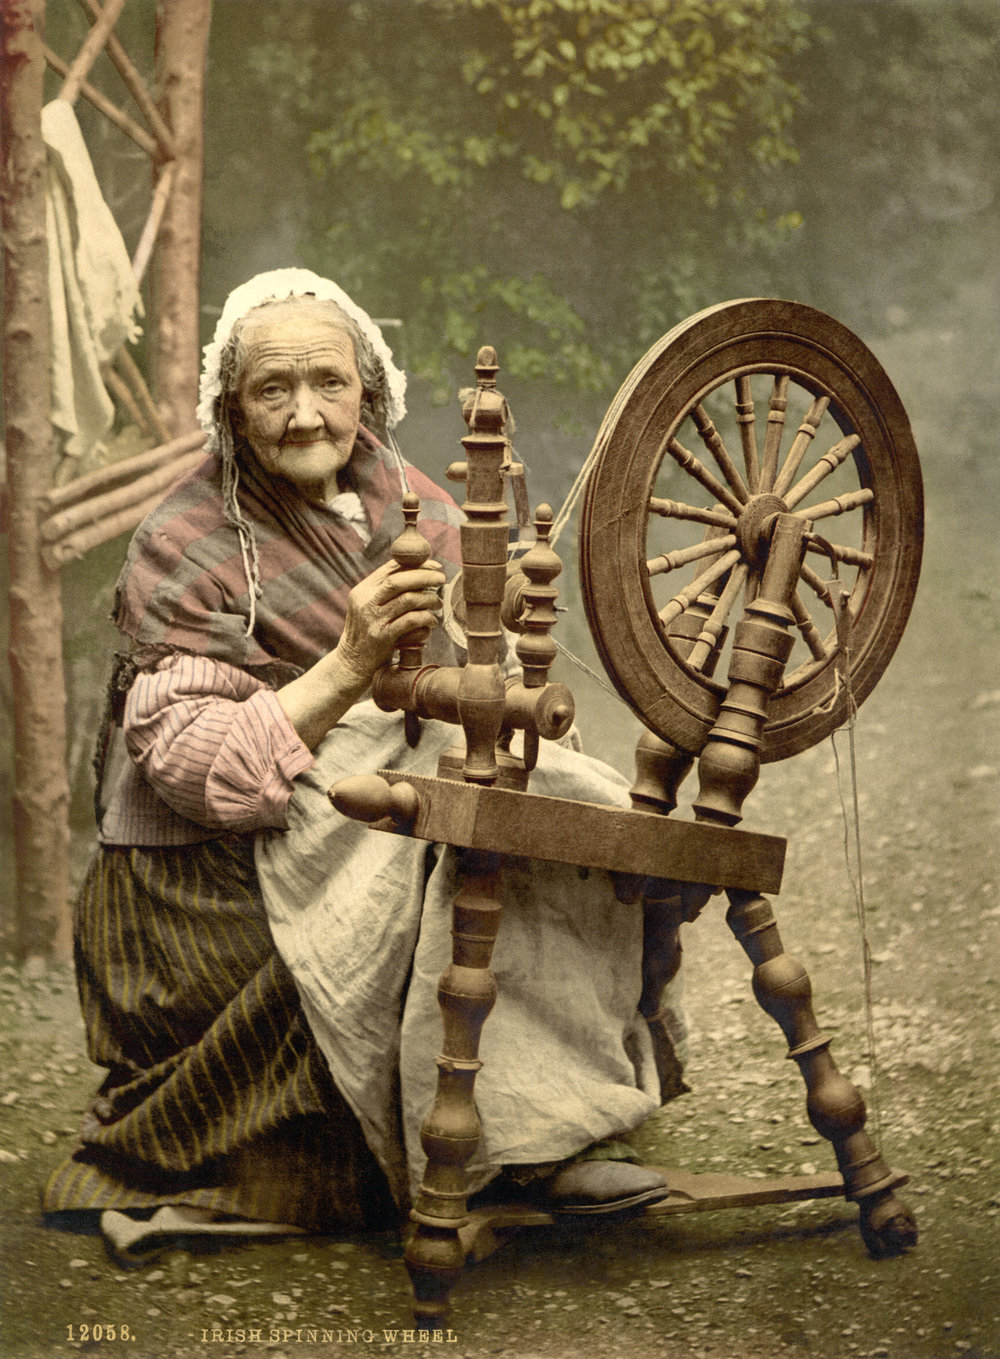 Irish spinning wheel - around 1900  Library of Congress  collection